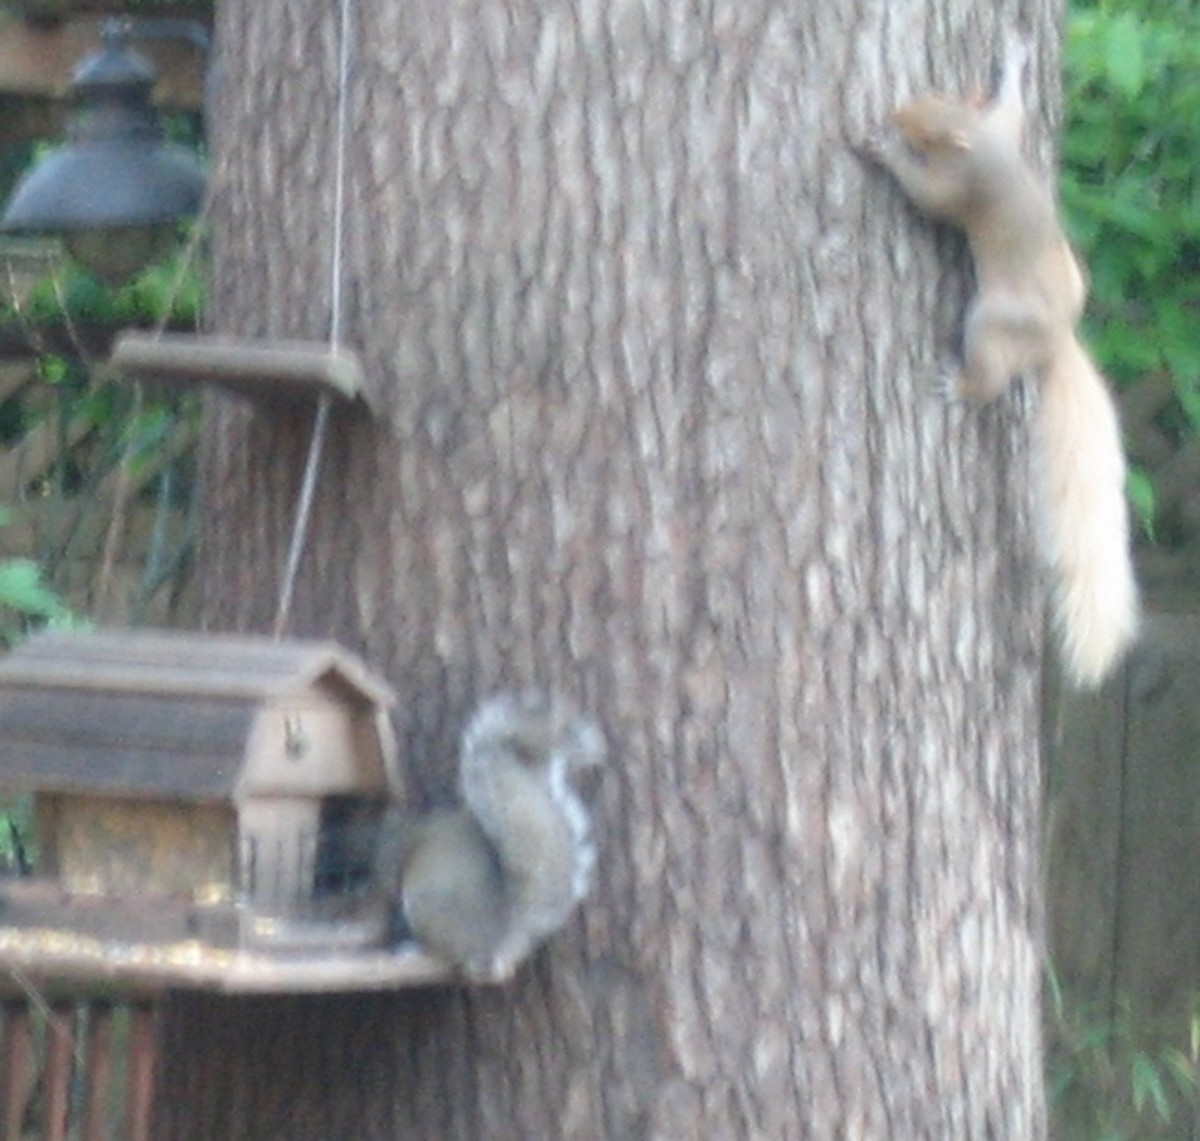 Blondie and typically-colored gray squirrel